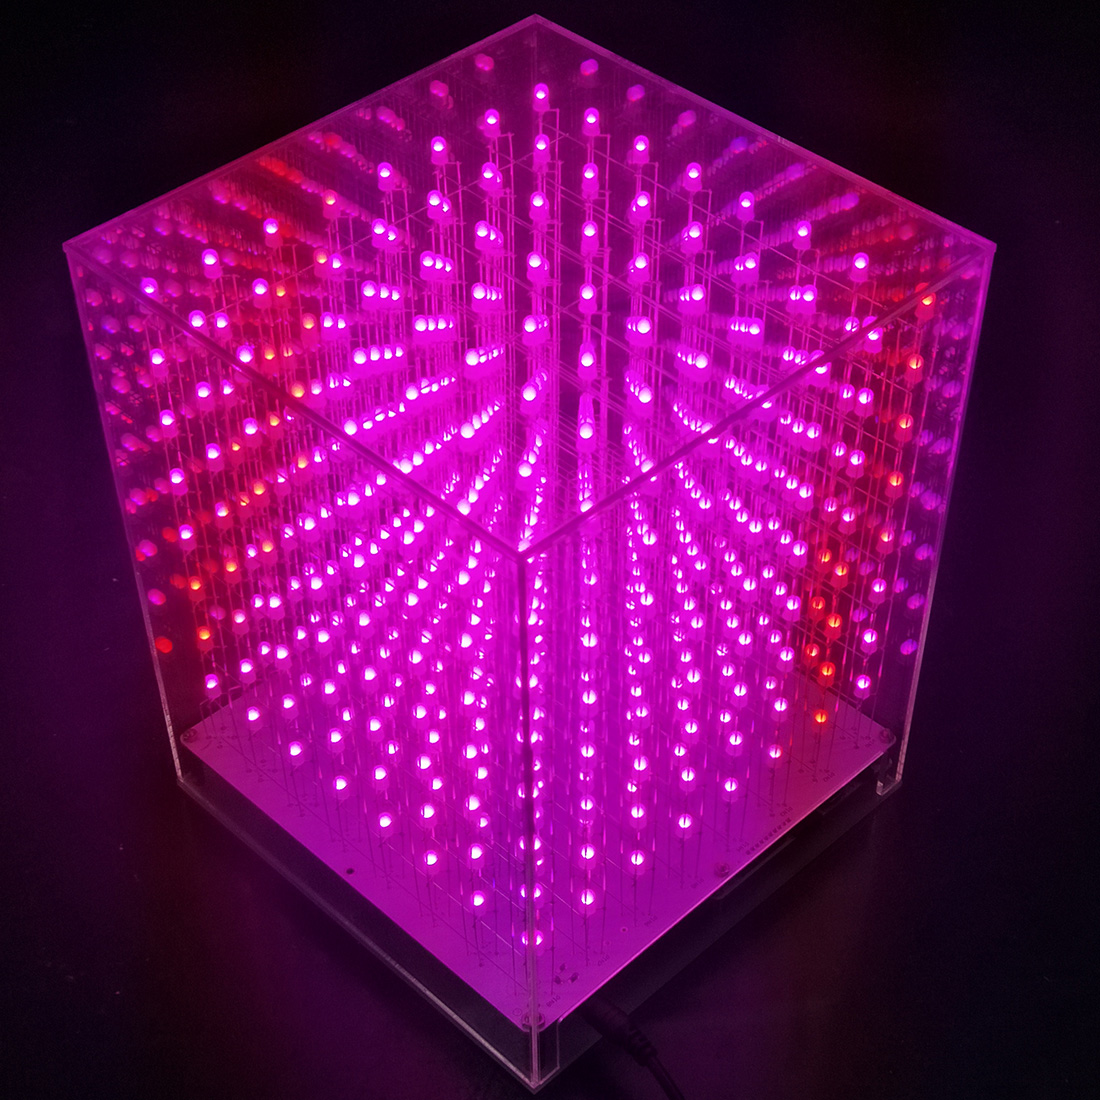 8 X 8 X 8 3D Multicolor LED Light Cube Kit Infrared Remote Control Light Cube Gift For Children Education Toys -Finished Product